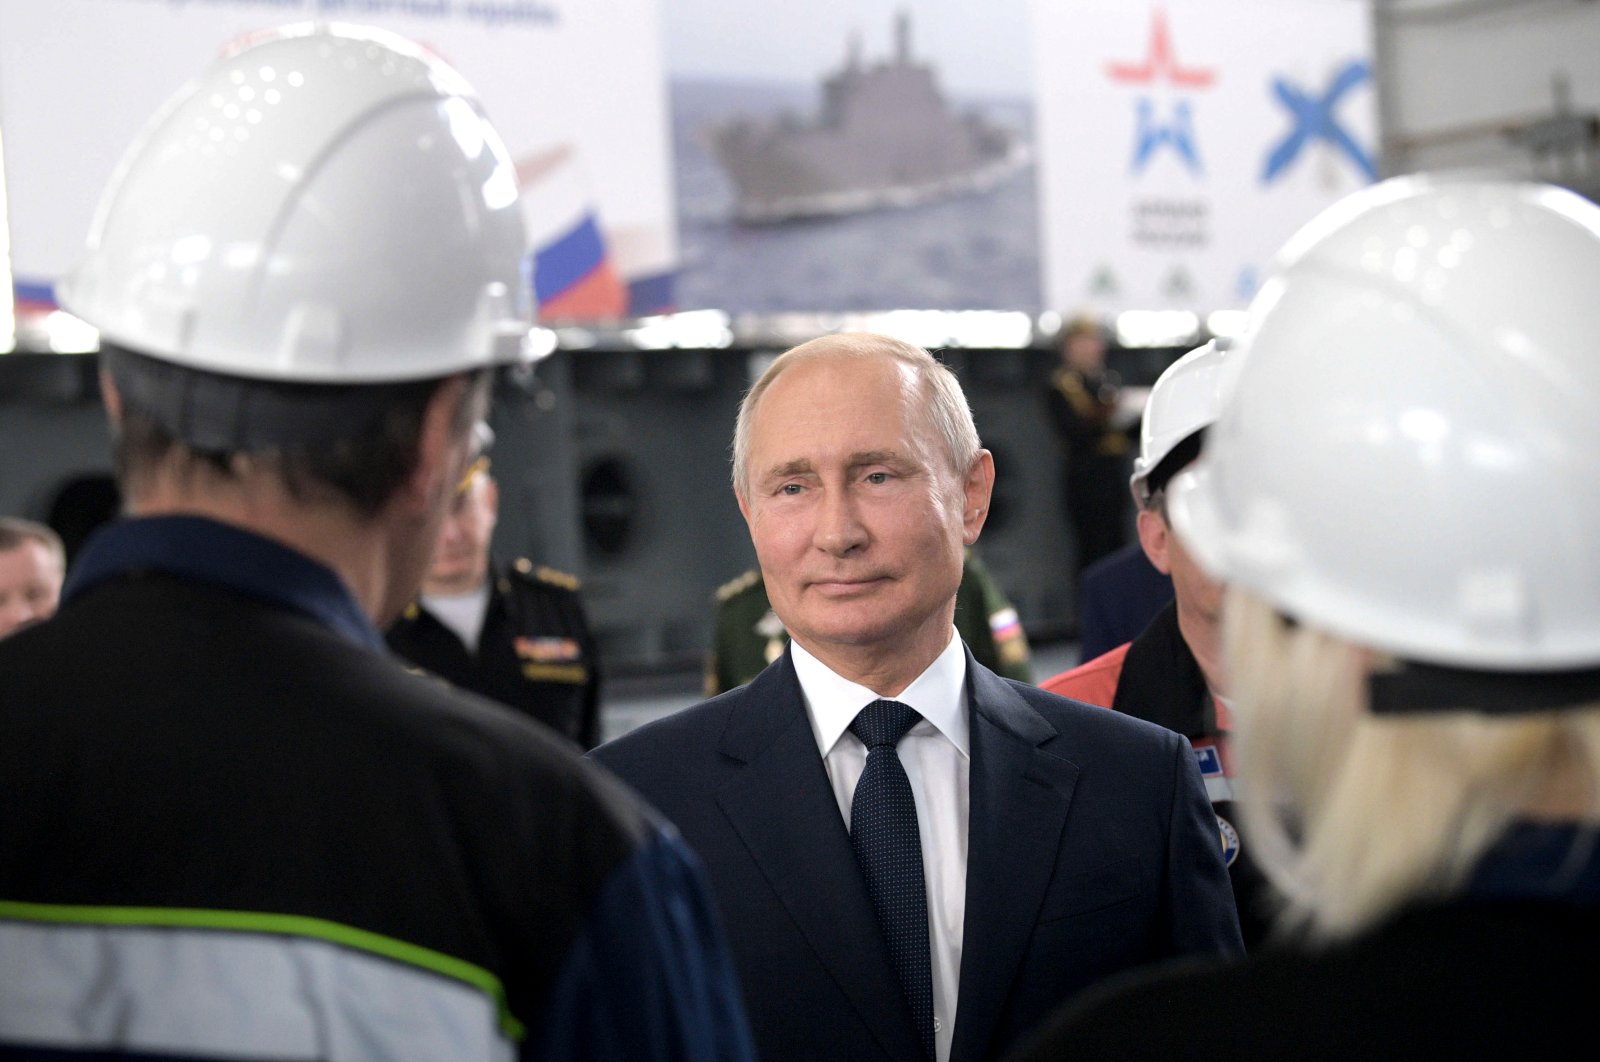 Russian President Vladimir Putin meets with workers at the Zaliv shipyard in Kerch, Crimea, Monday, July 20, 2020. (AP Photo)